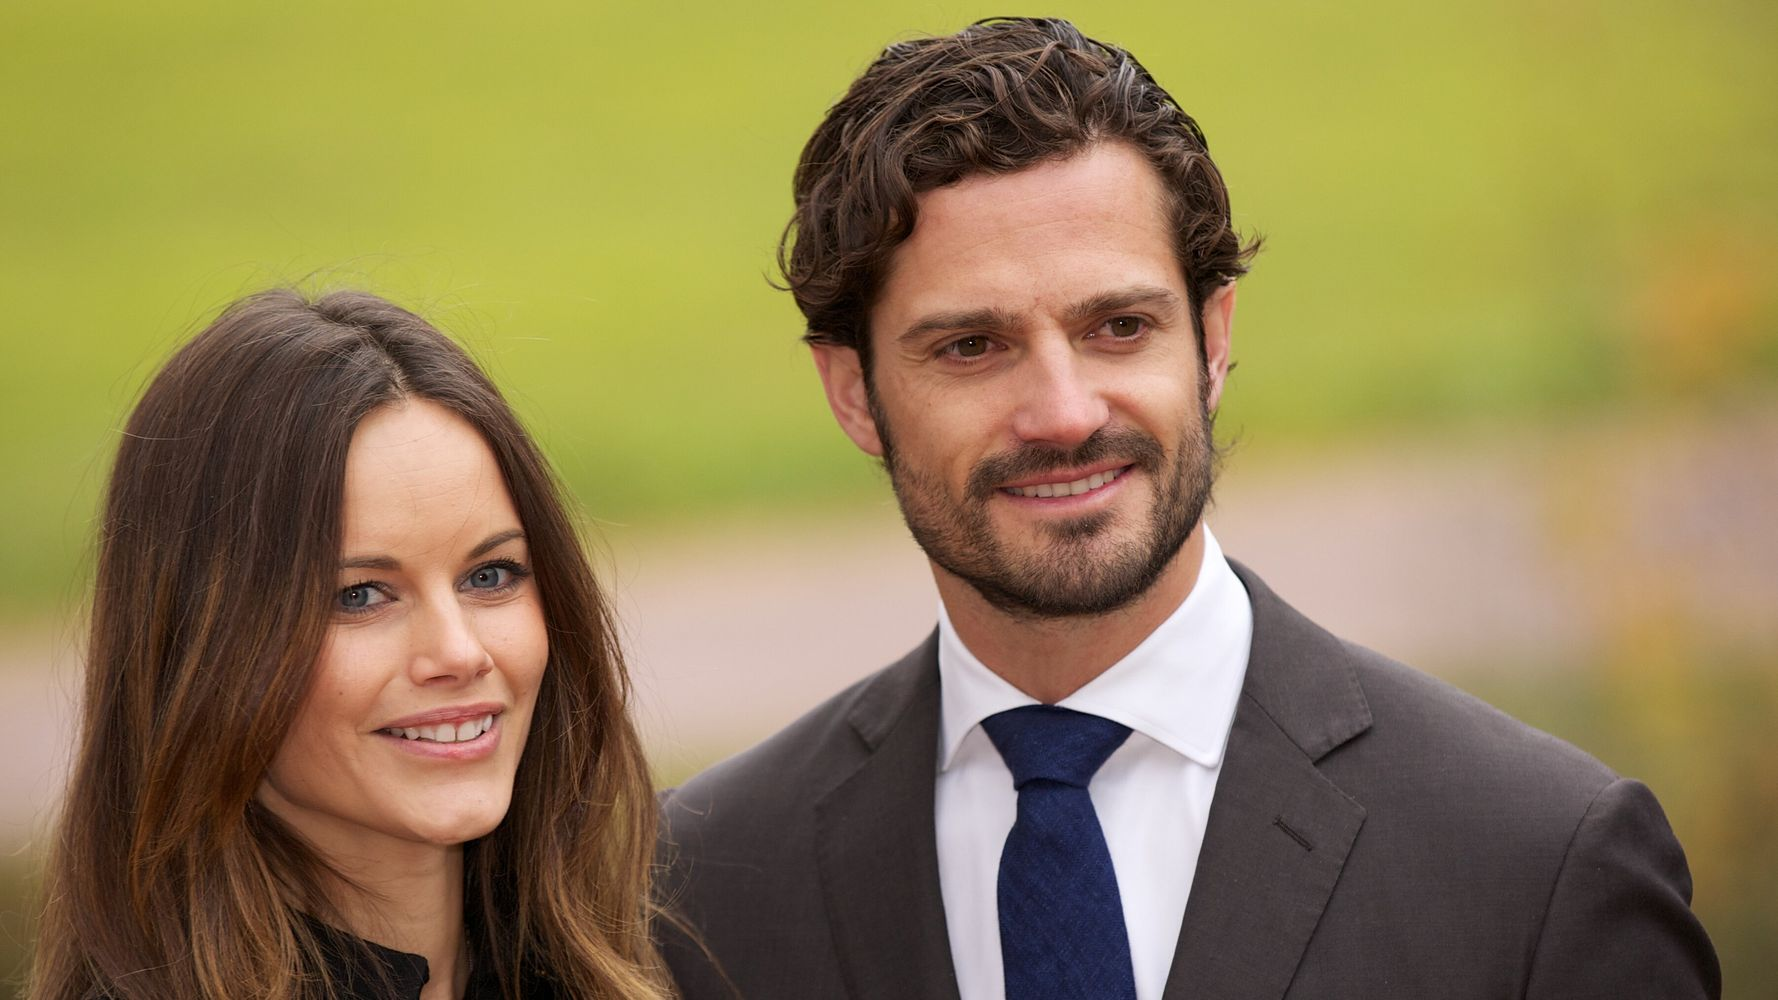 Sweden's Prince Carl Philip And Wife Test Positive For Coronavirus